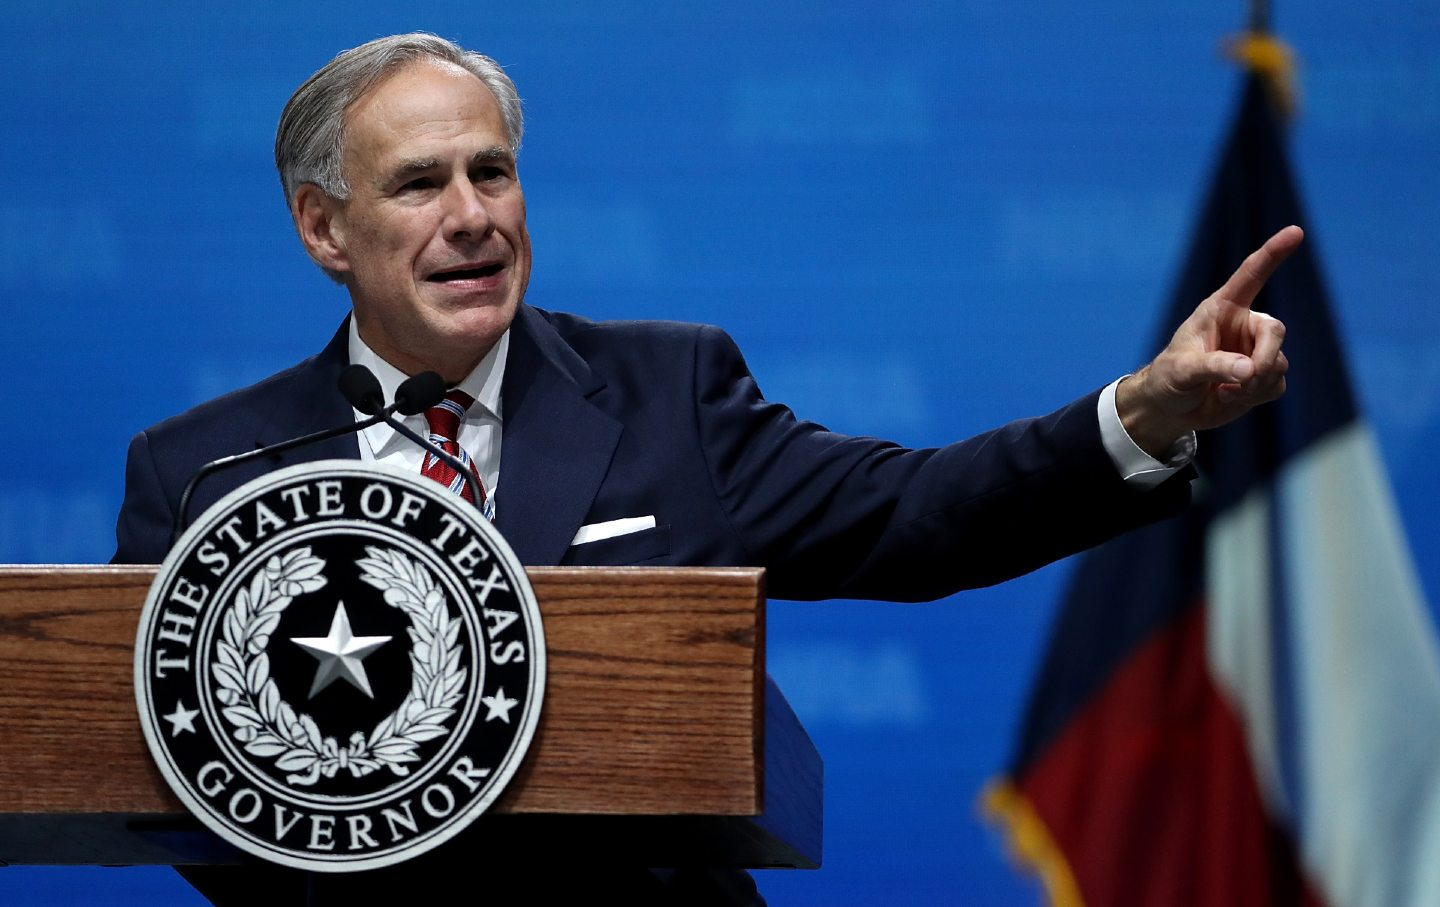 GOP Strategy, Texas Style: Praise God and Whip Up the Xenophobia